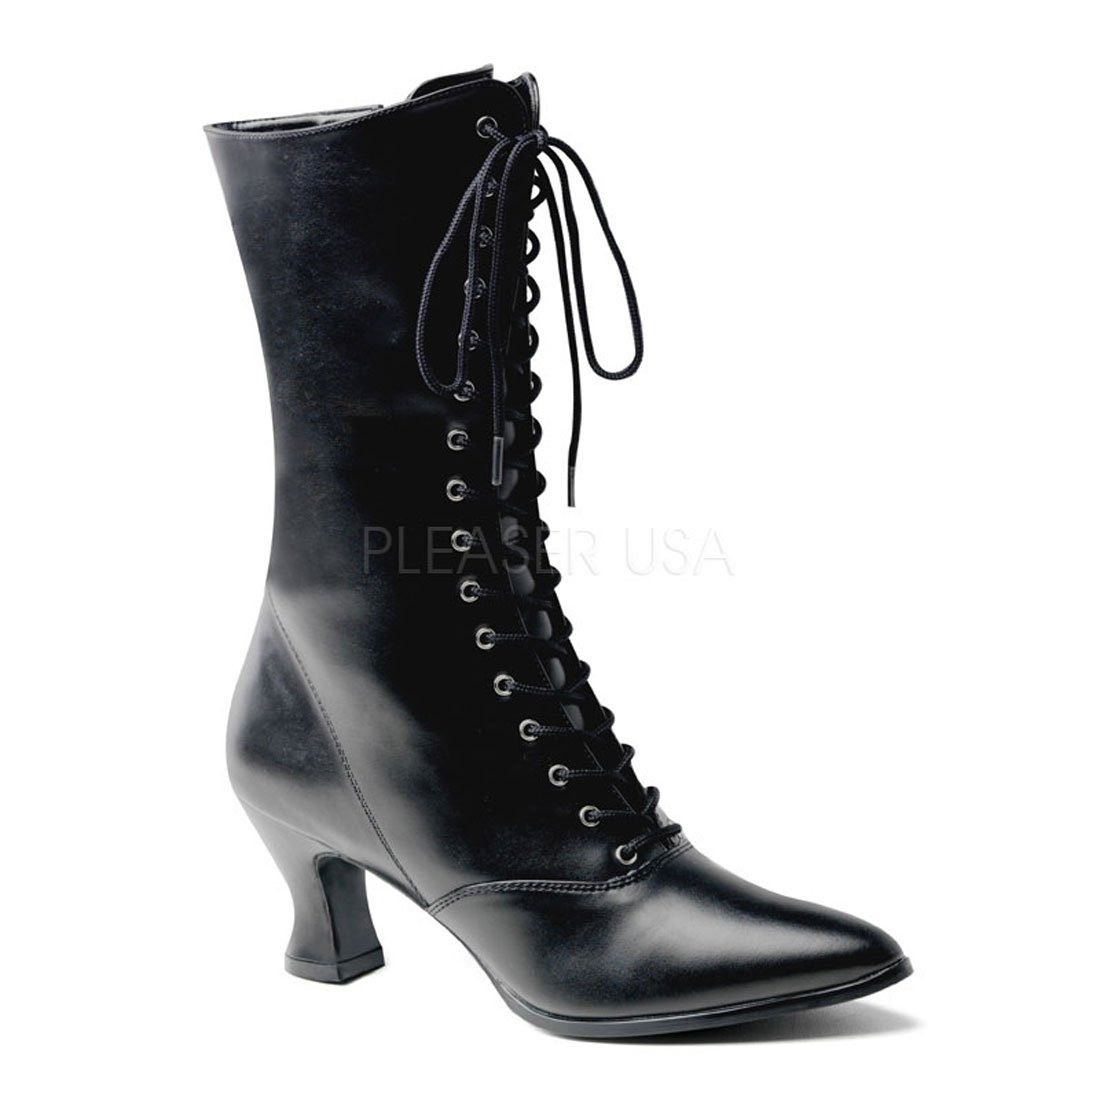 Pleaser 120 (10, Black) VIC-120 Granny Boot W Zipper